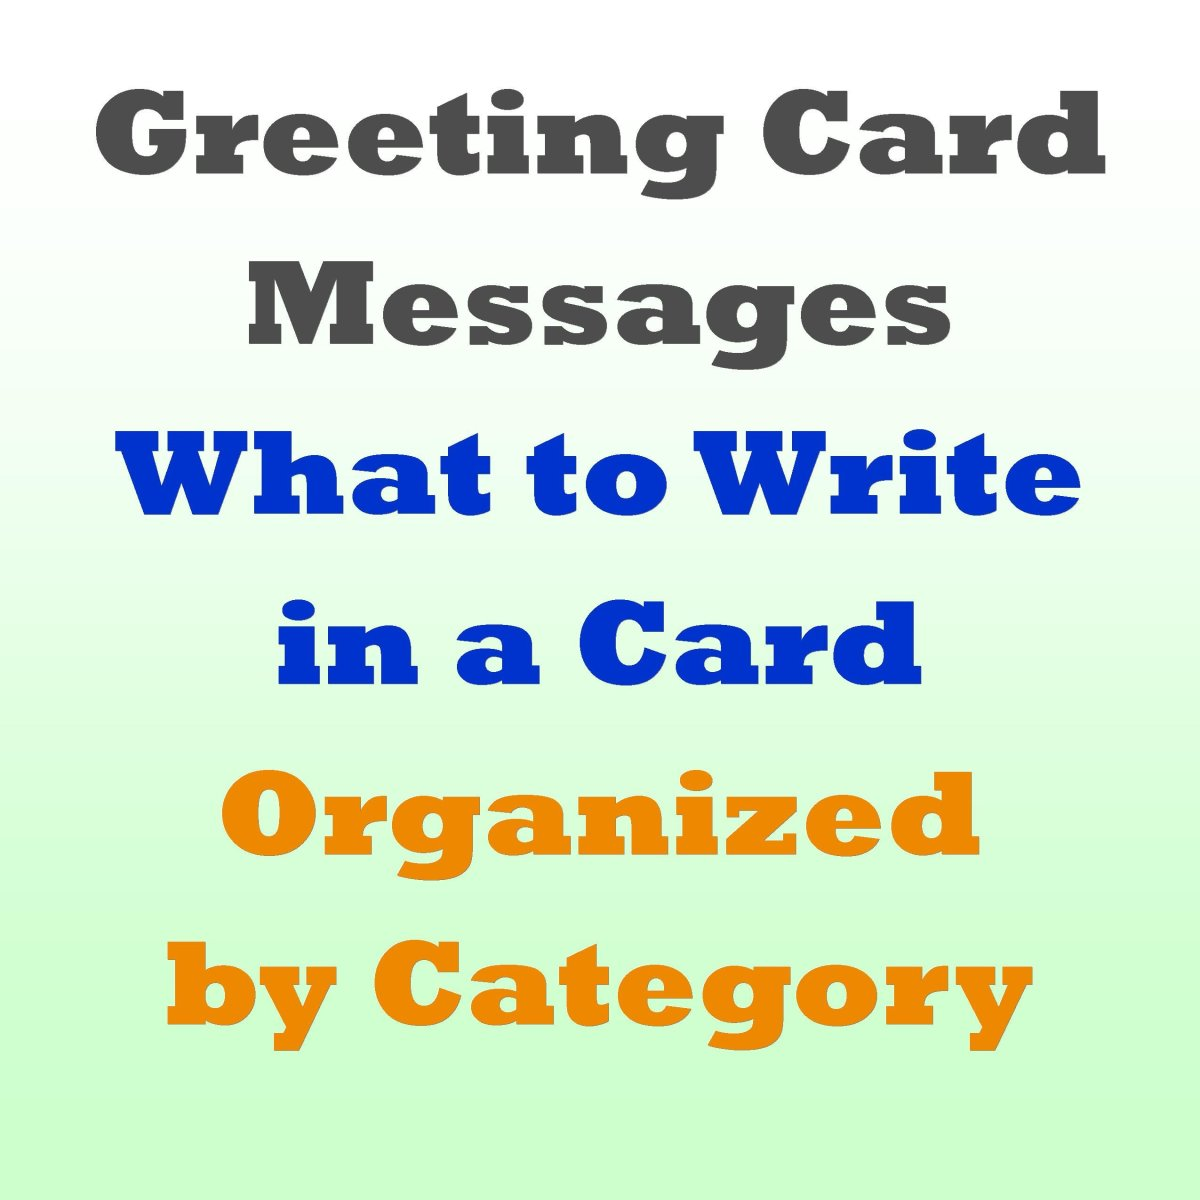 Greeting card messages examples of what to write hubpages kristyandbryce Images